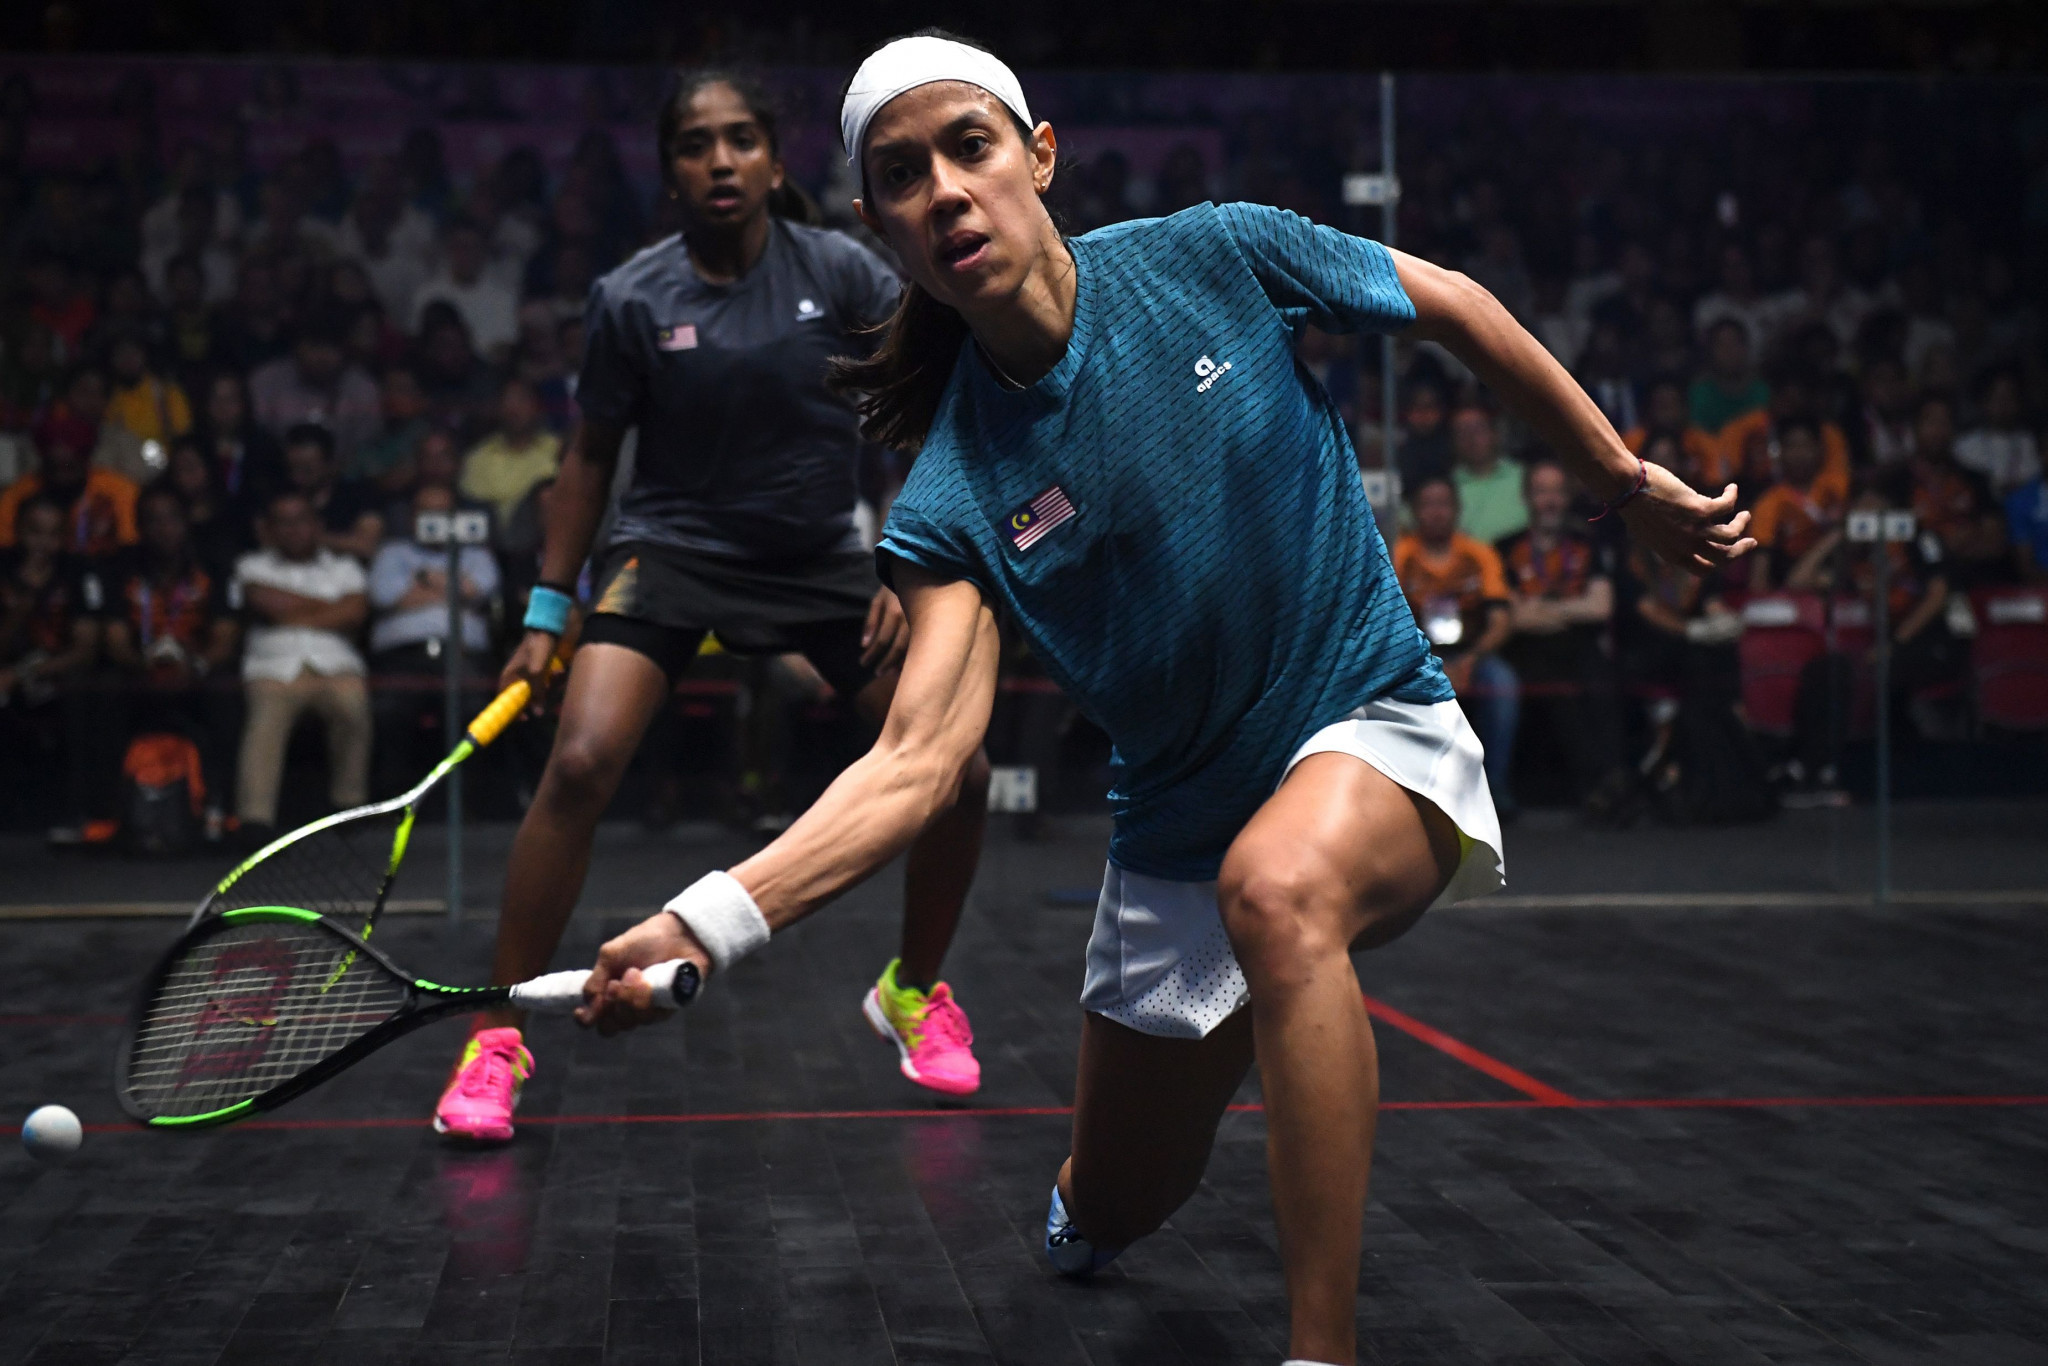 Nicol David's World Championship career is at an end following defeat to France's Camille Serme ©Getty Images